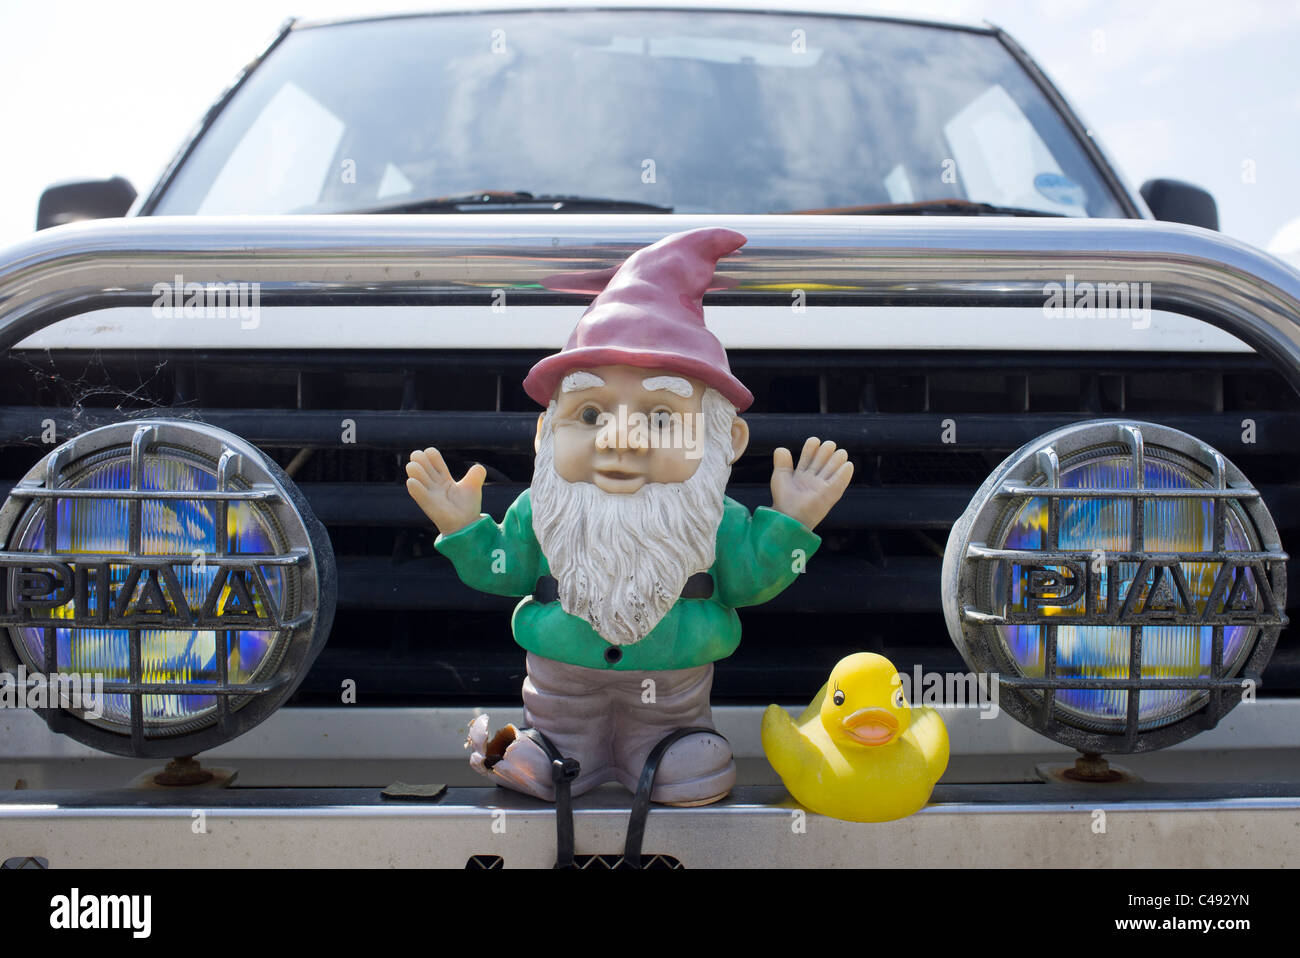 car bumber with garden knome and rubber duck - Stock Image